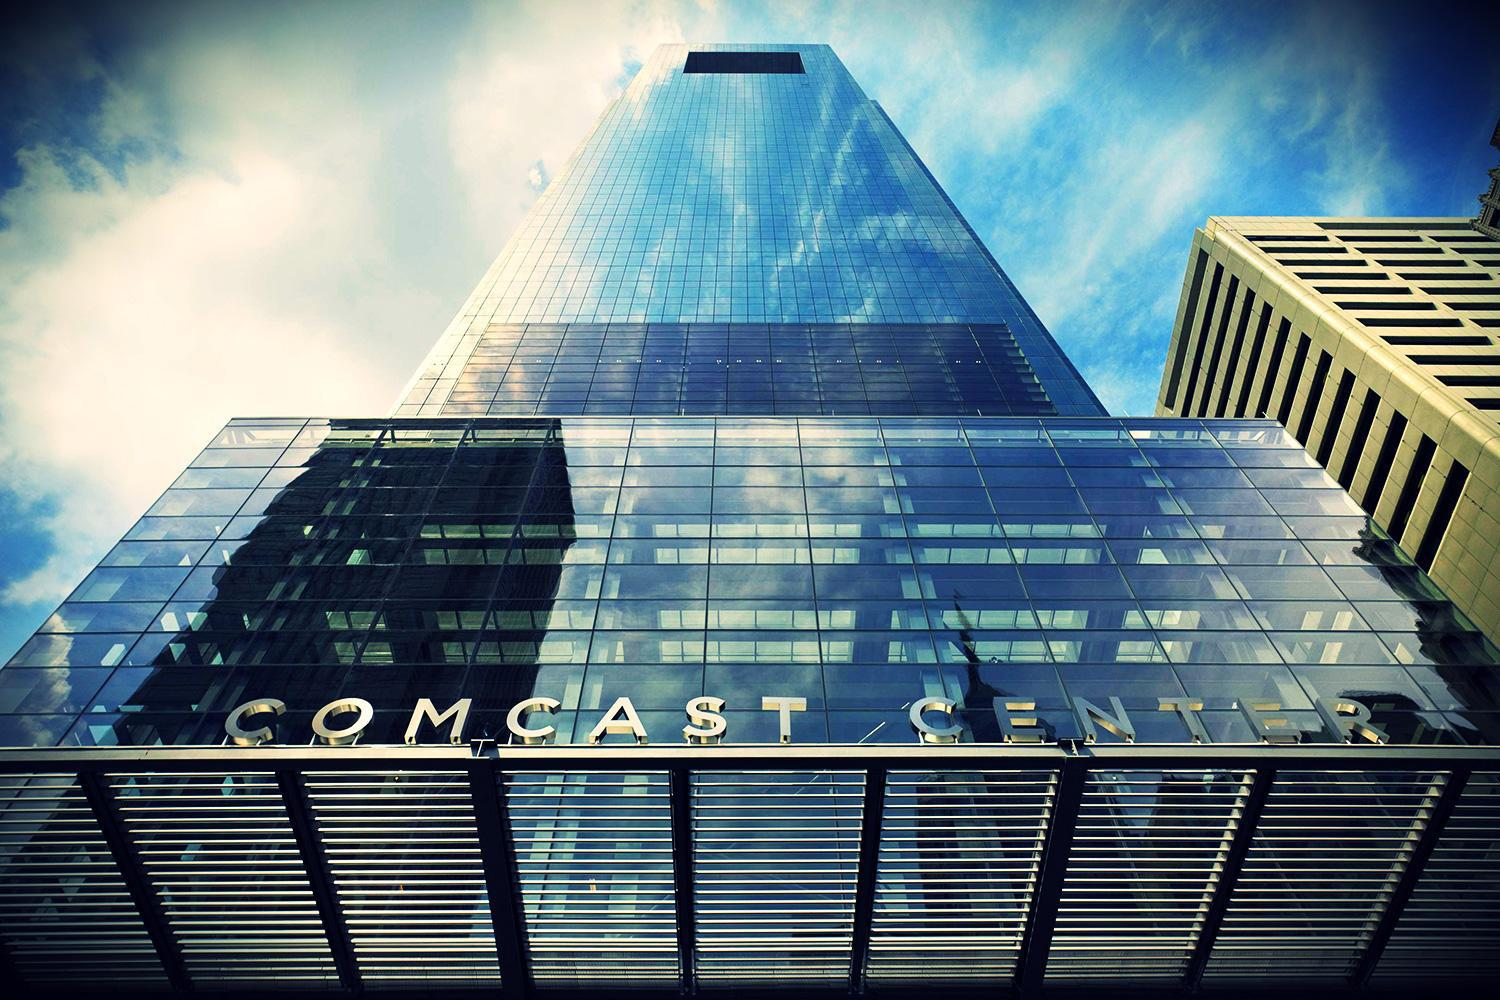 Comcast Begins Rolling Out Its New Docsis 3 1 Gigabit